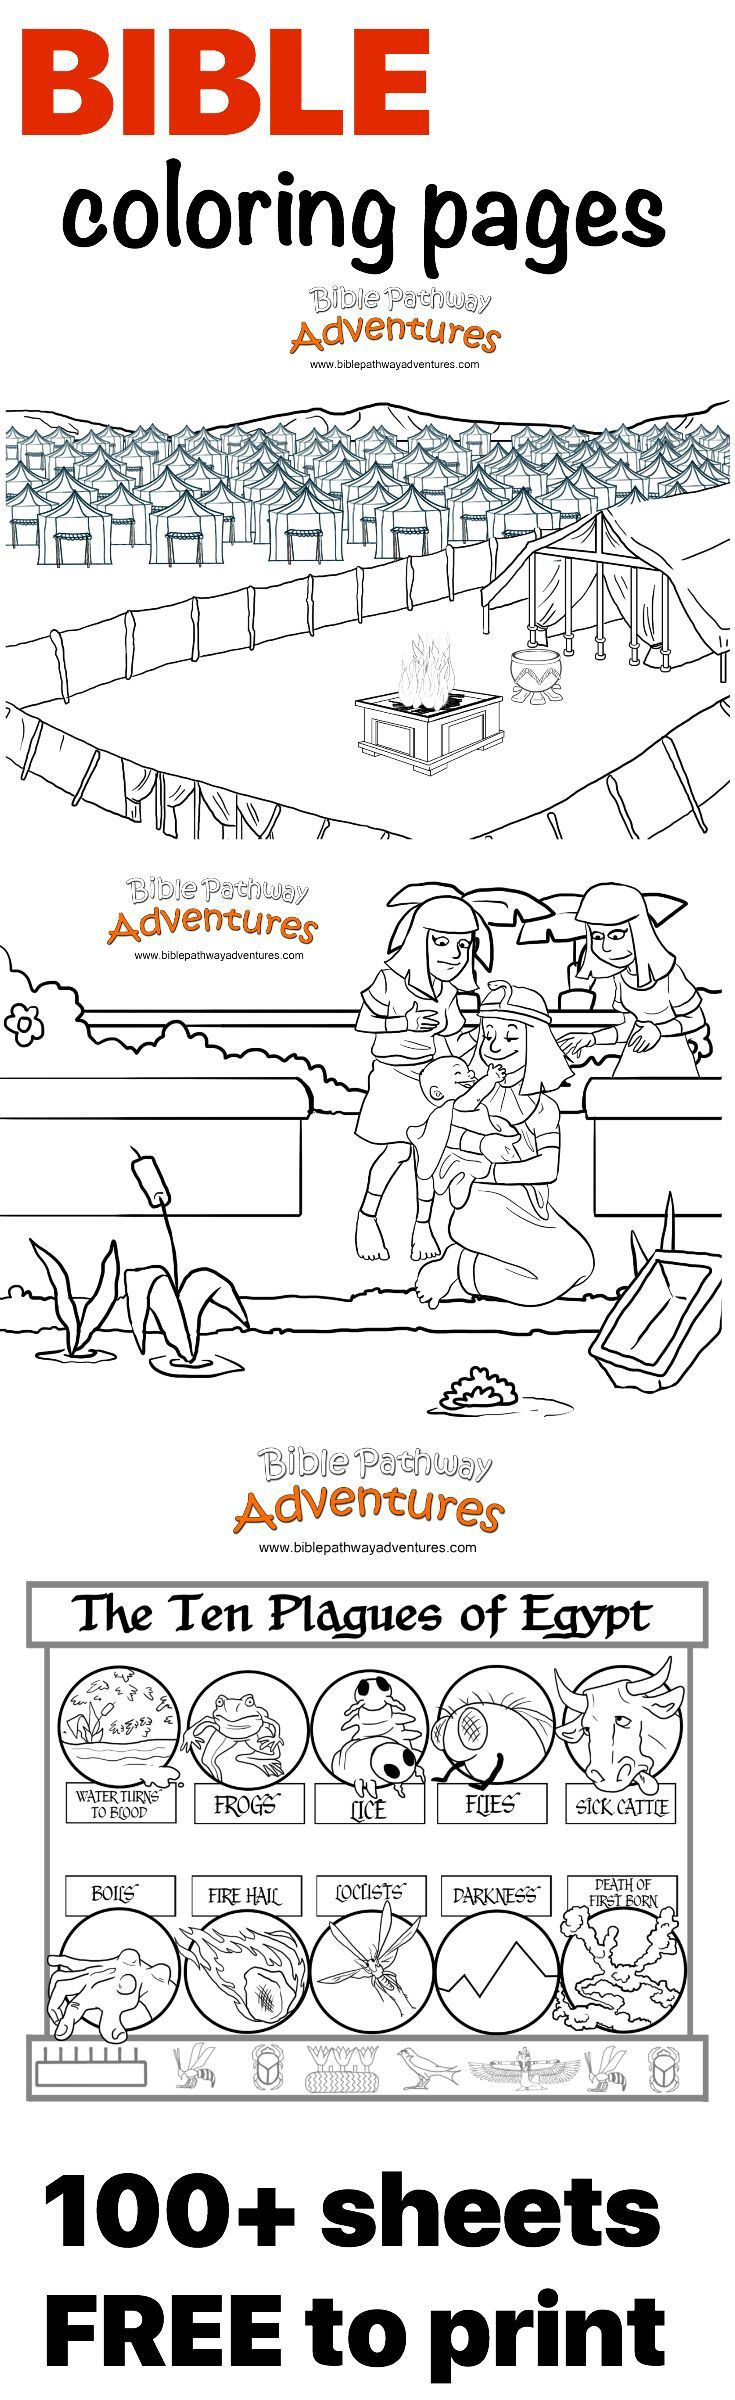 436 best Bible Coloring Pages images on Pinterest